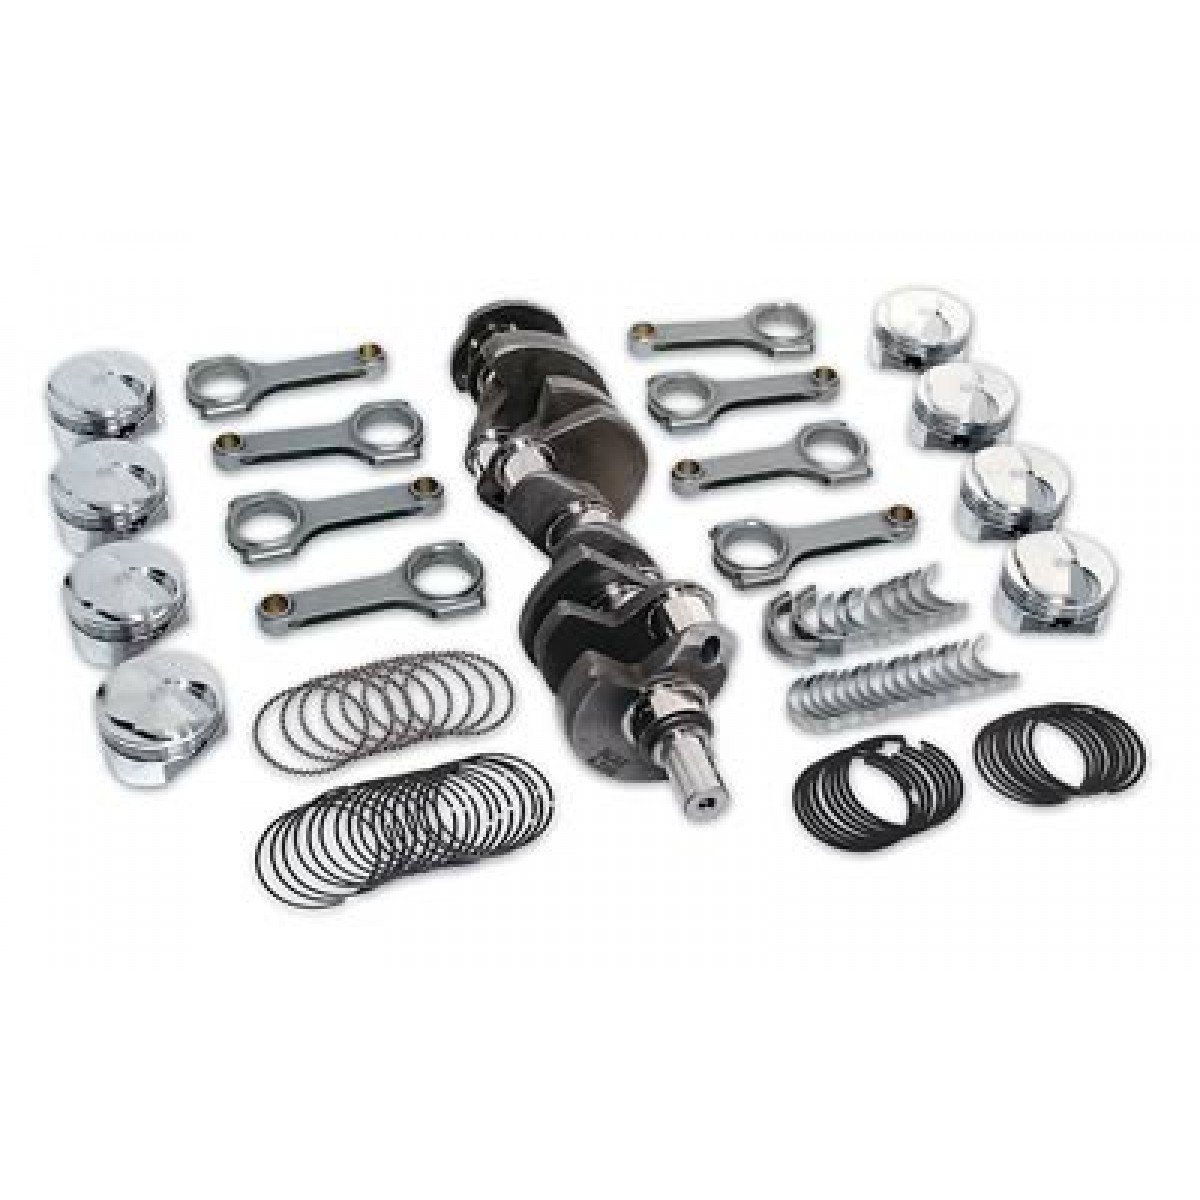 Ford 460 To 520 Scat Forged Stroker Kit Free Shipping U S